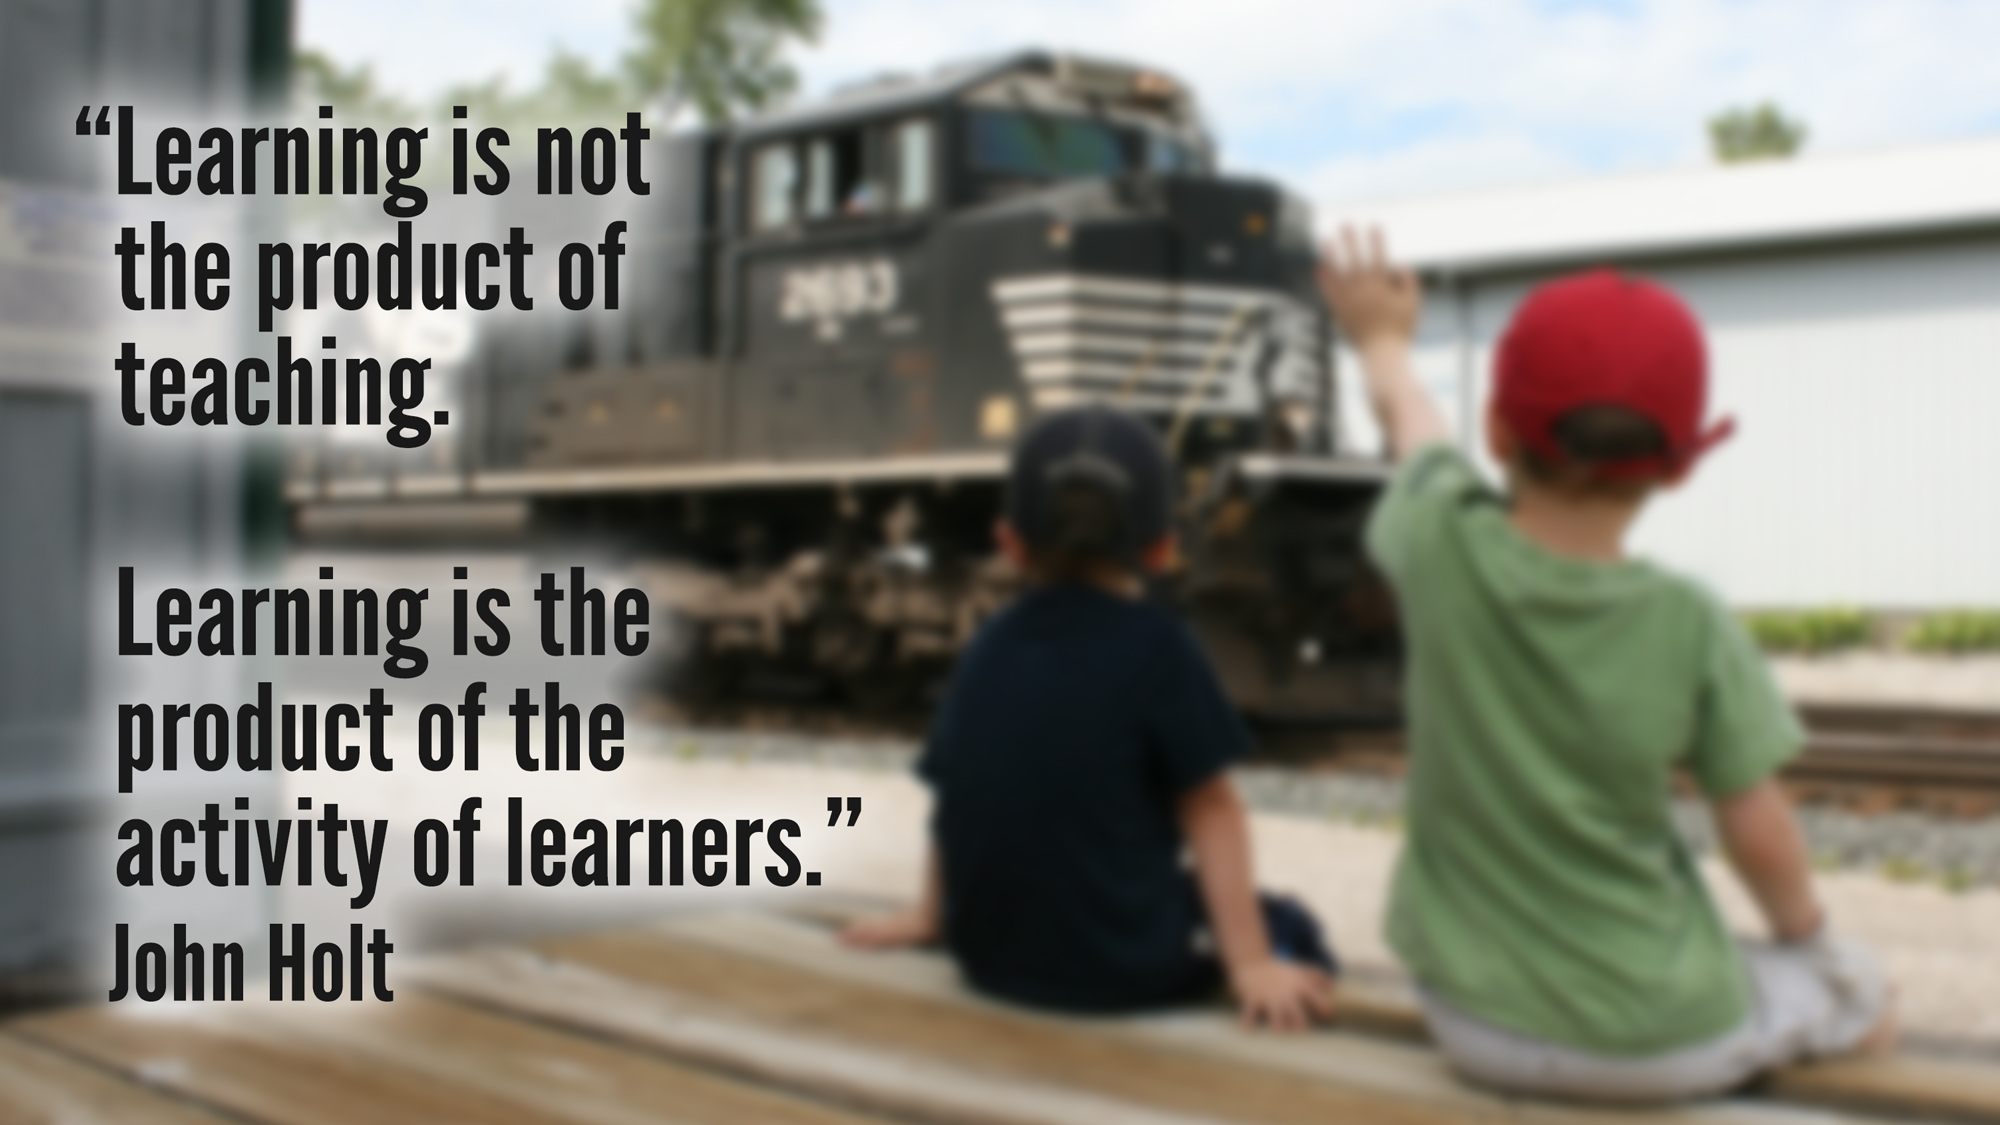 Learning is the product of the activity of learners.